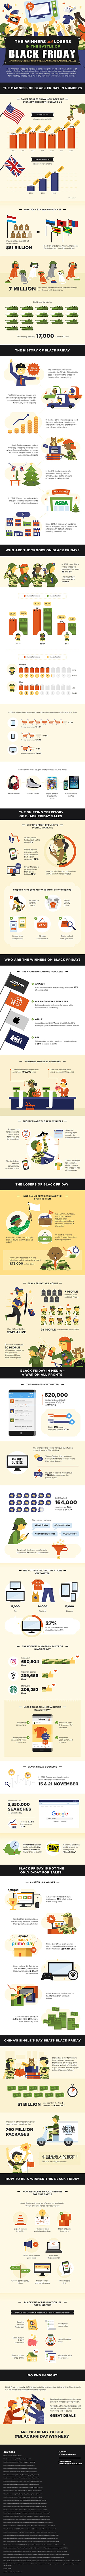 1479914162_black-friday-infographic-1